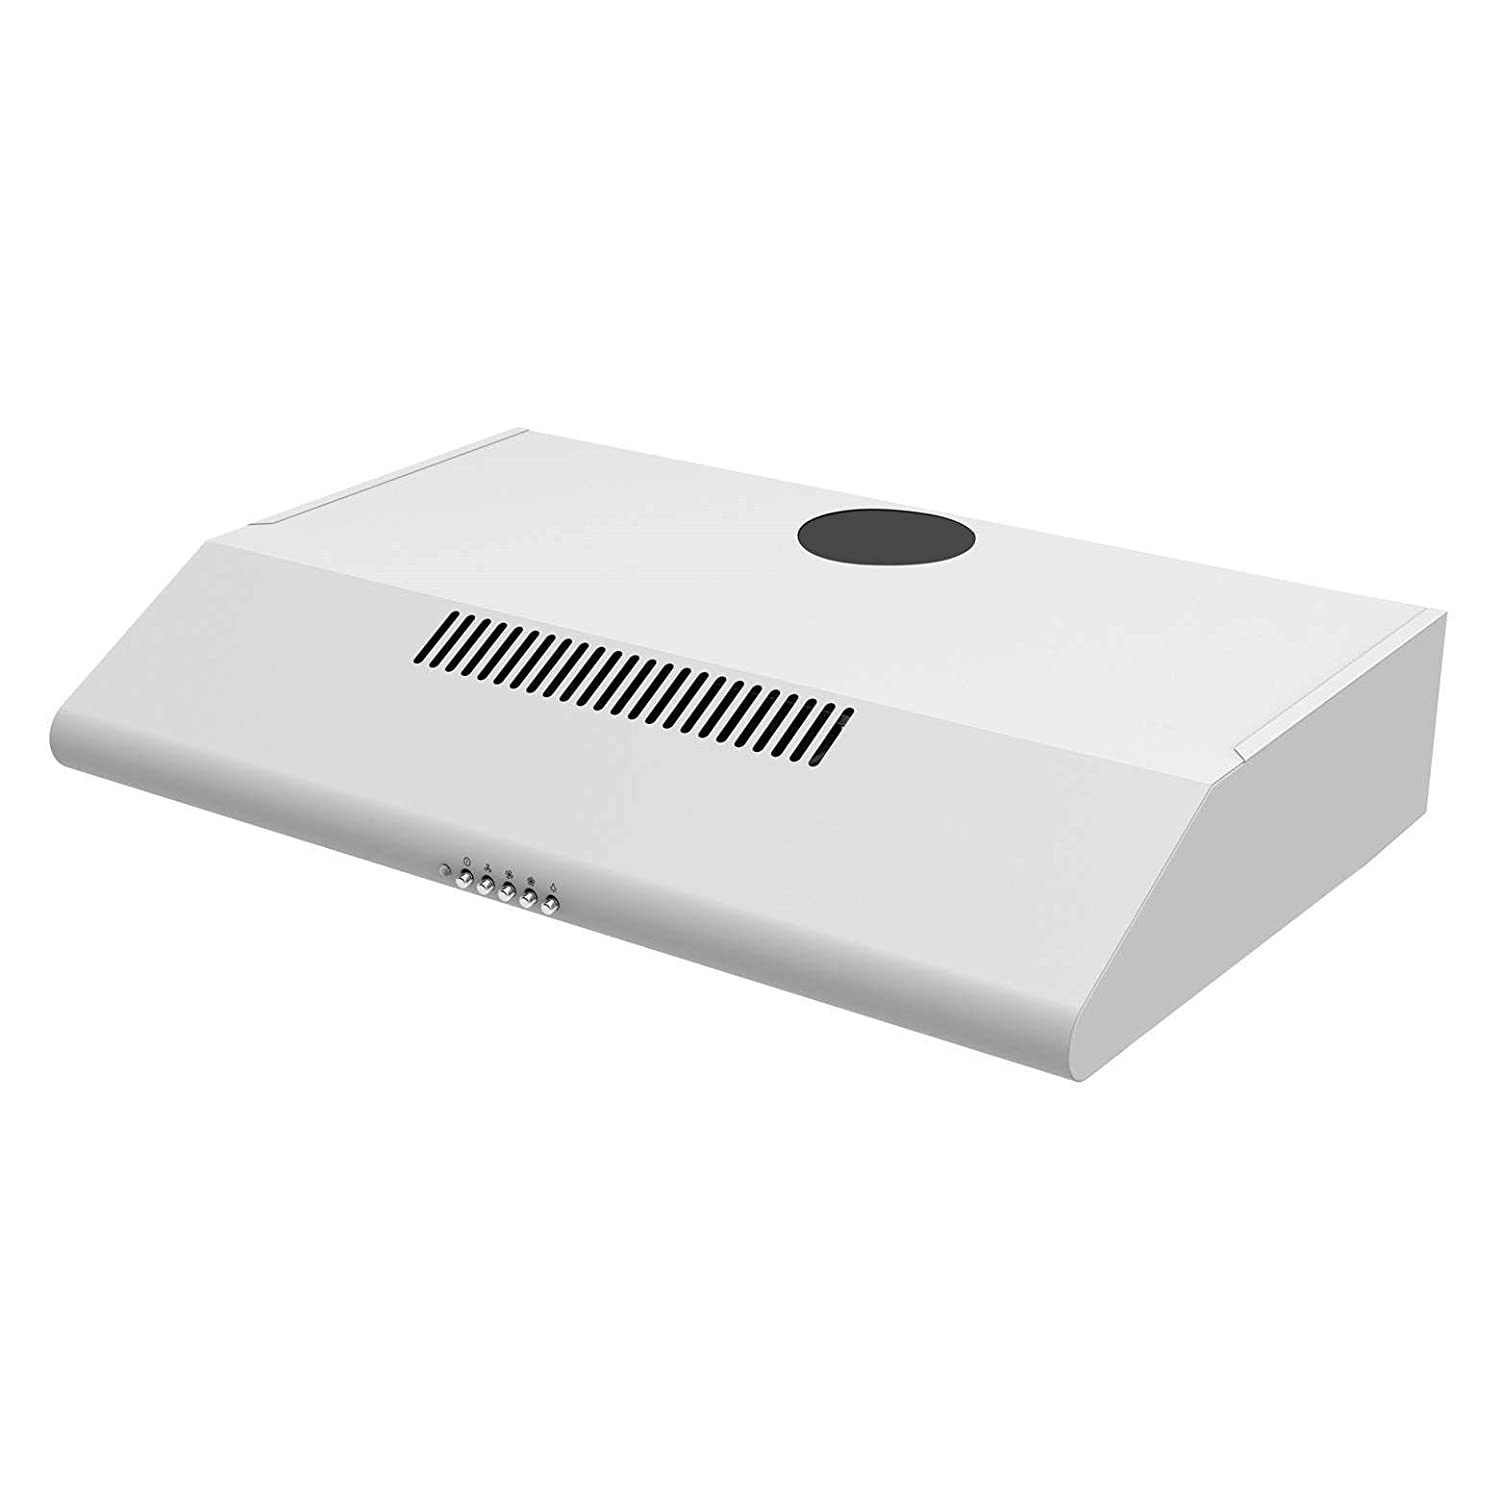 Cookology STAND600WH White Conventional Cooker Hood | 60cm Visor Extractor Fan